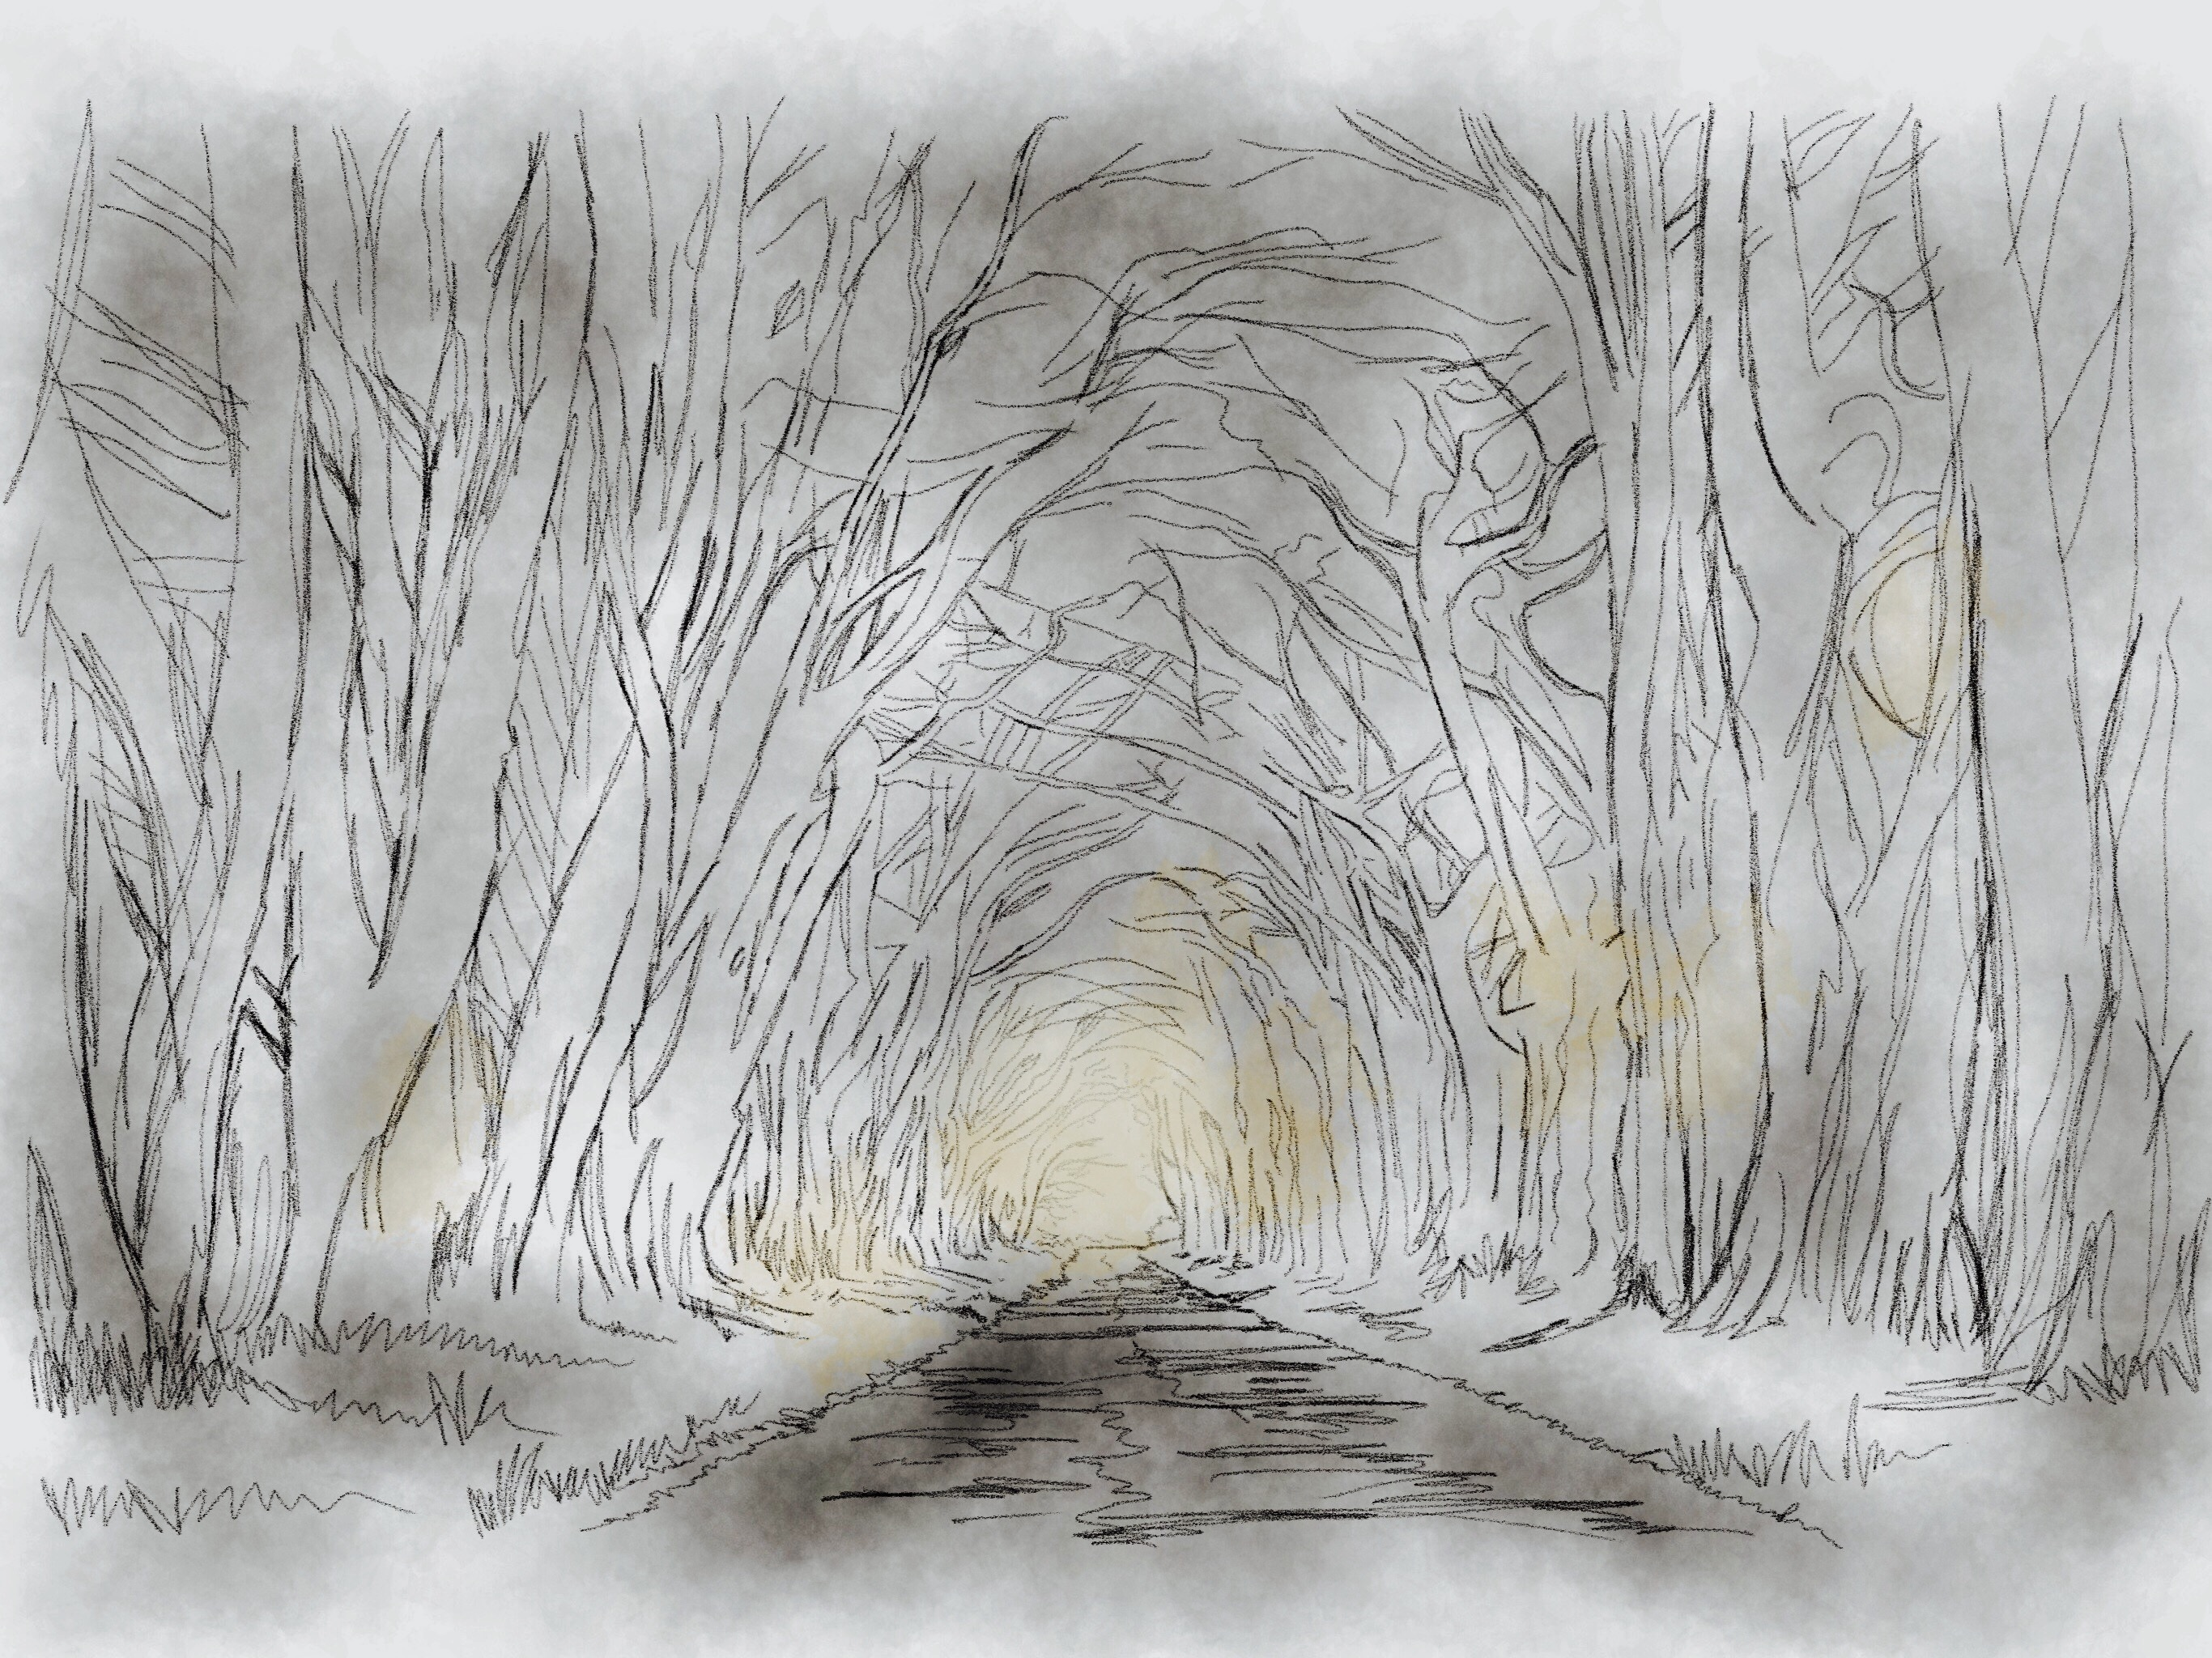 Light at end of the tunnel by KateHodges